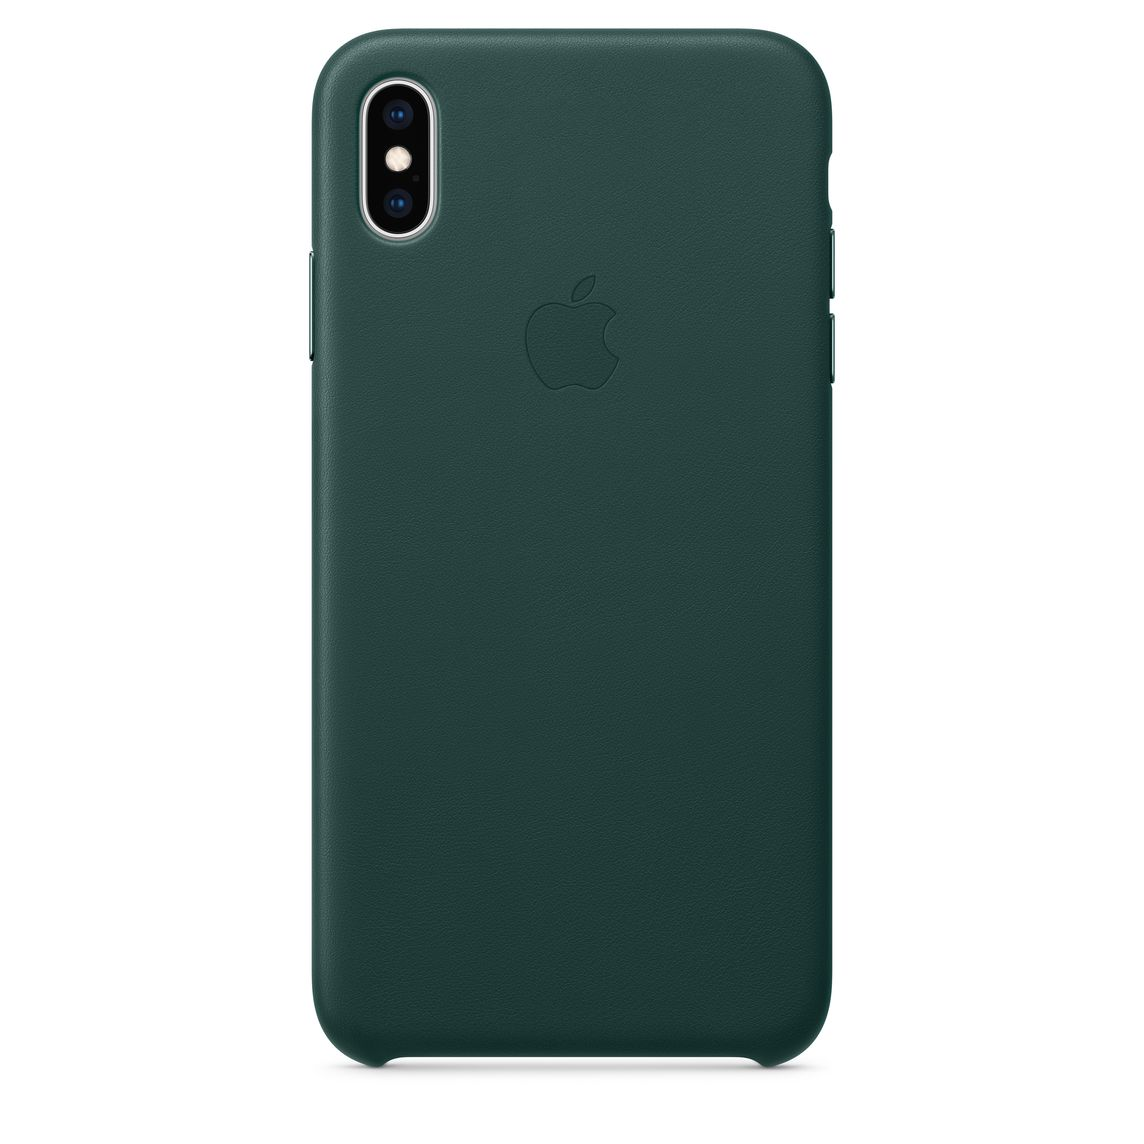 sports shoes c9fb3 83205 iPhone XS Max Leather Case - Forest Green